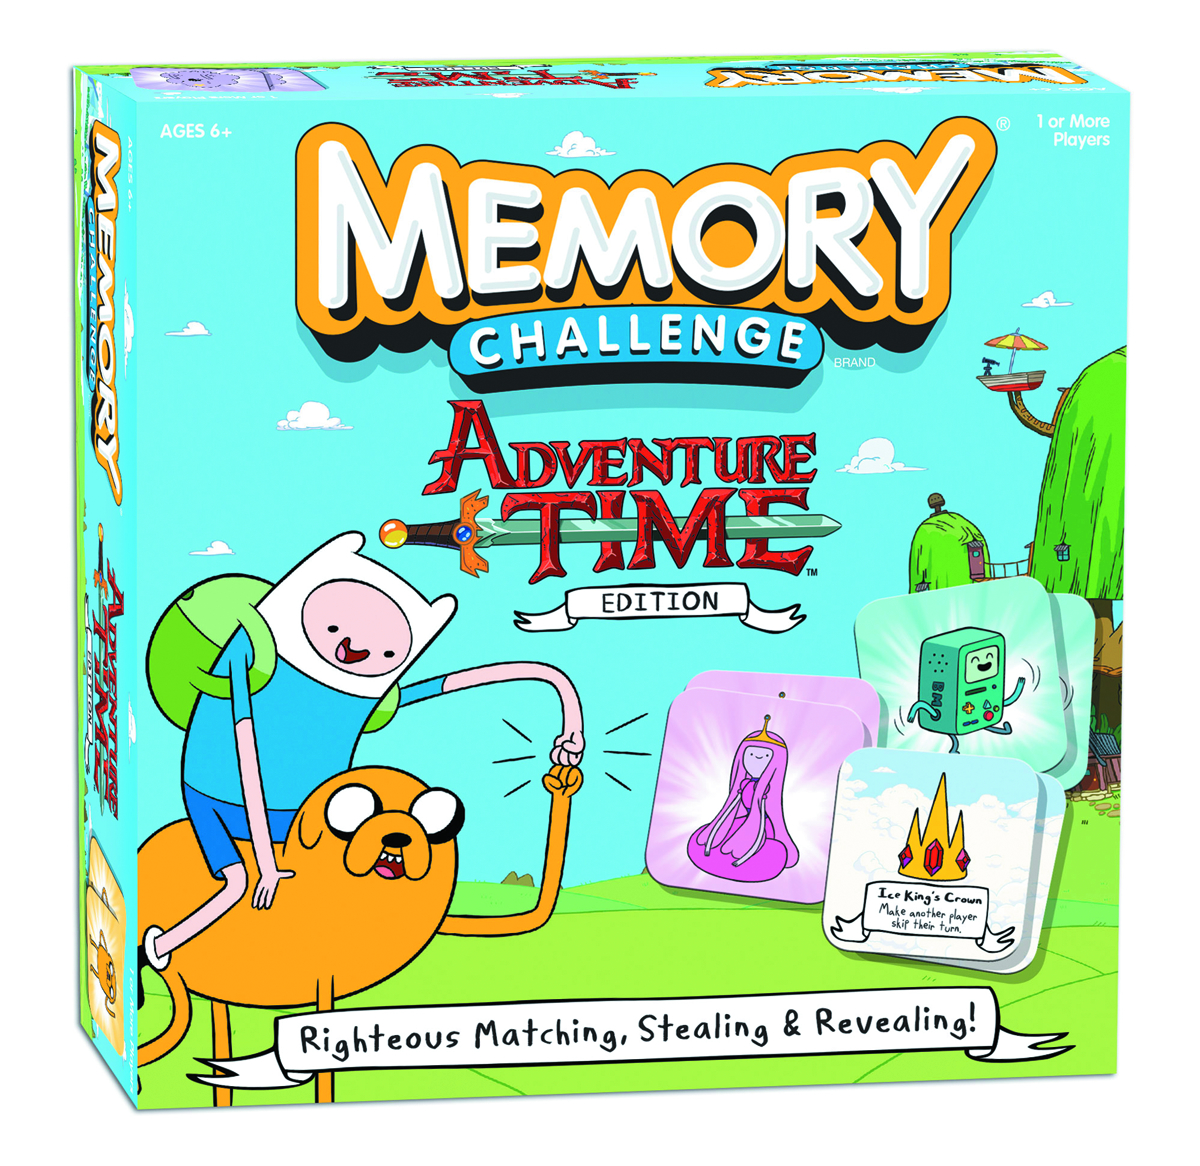 ADVENTURE TIME MEMORY